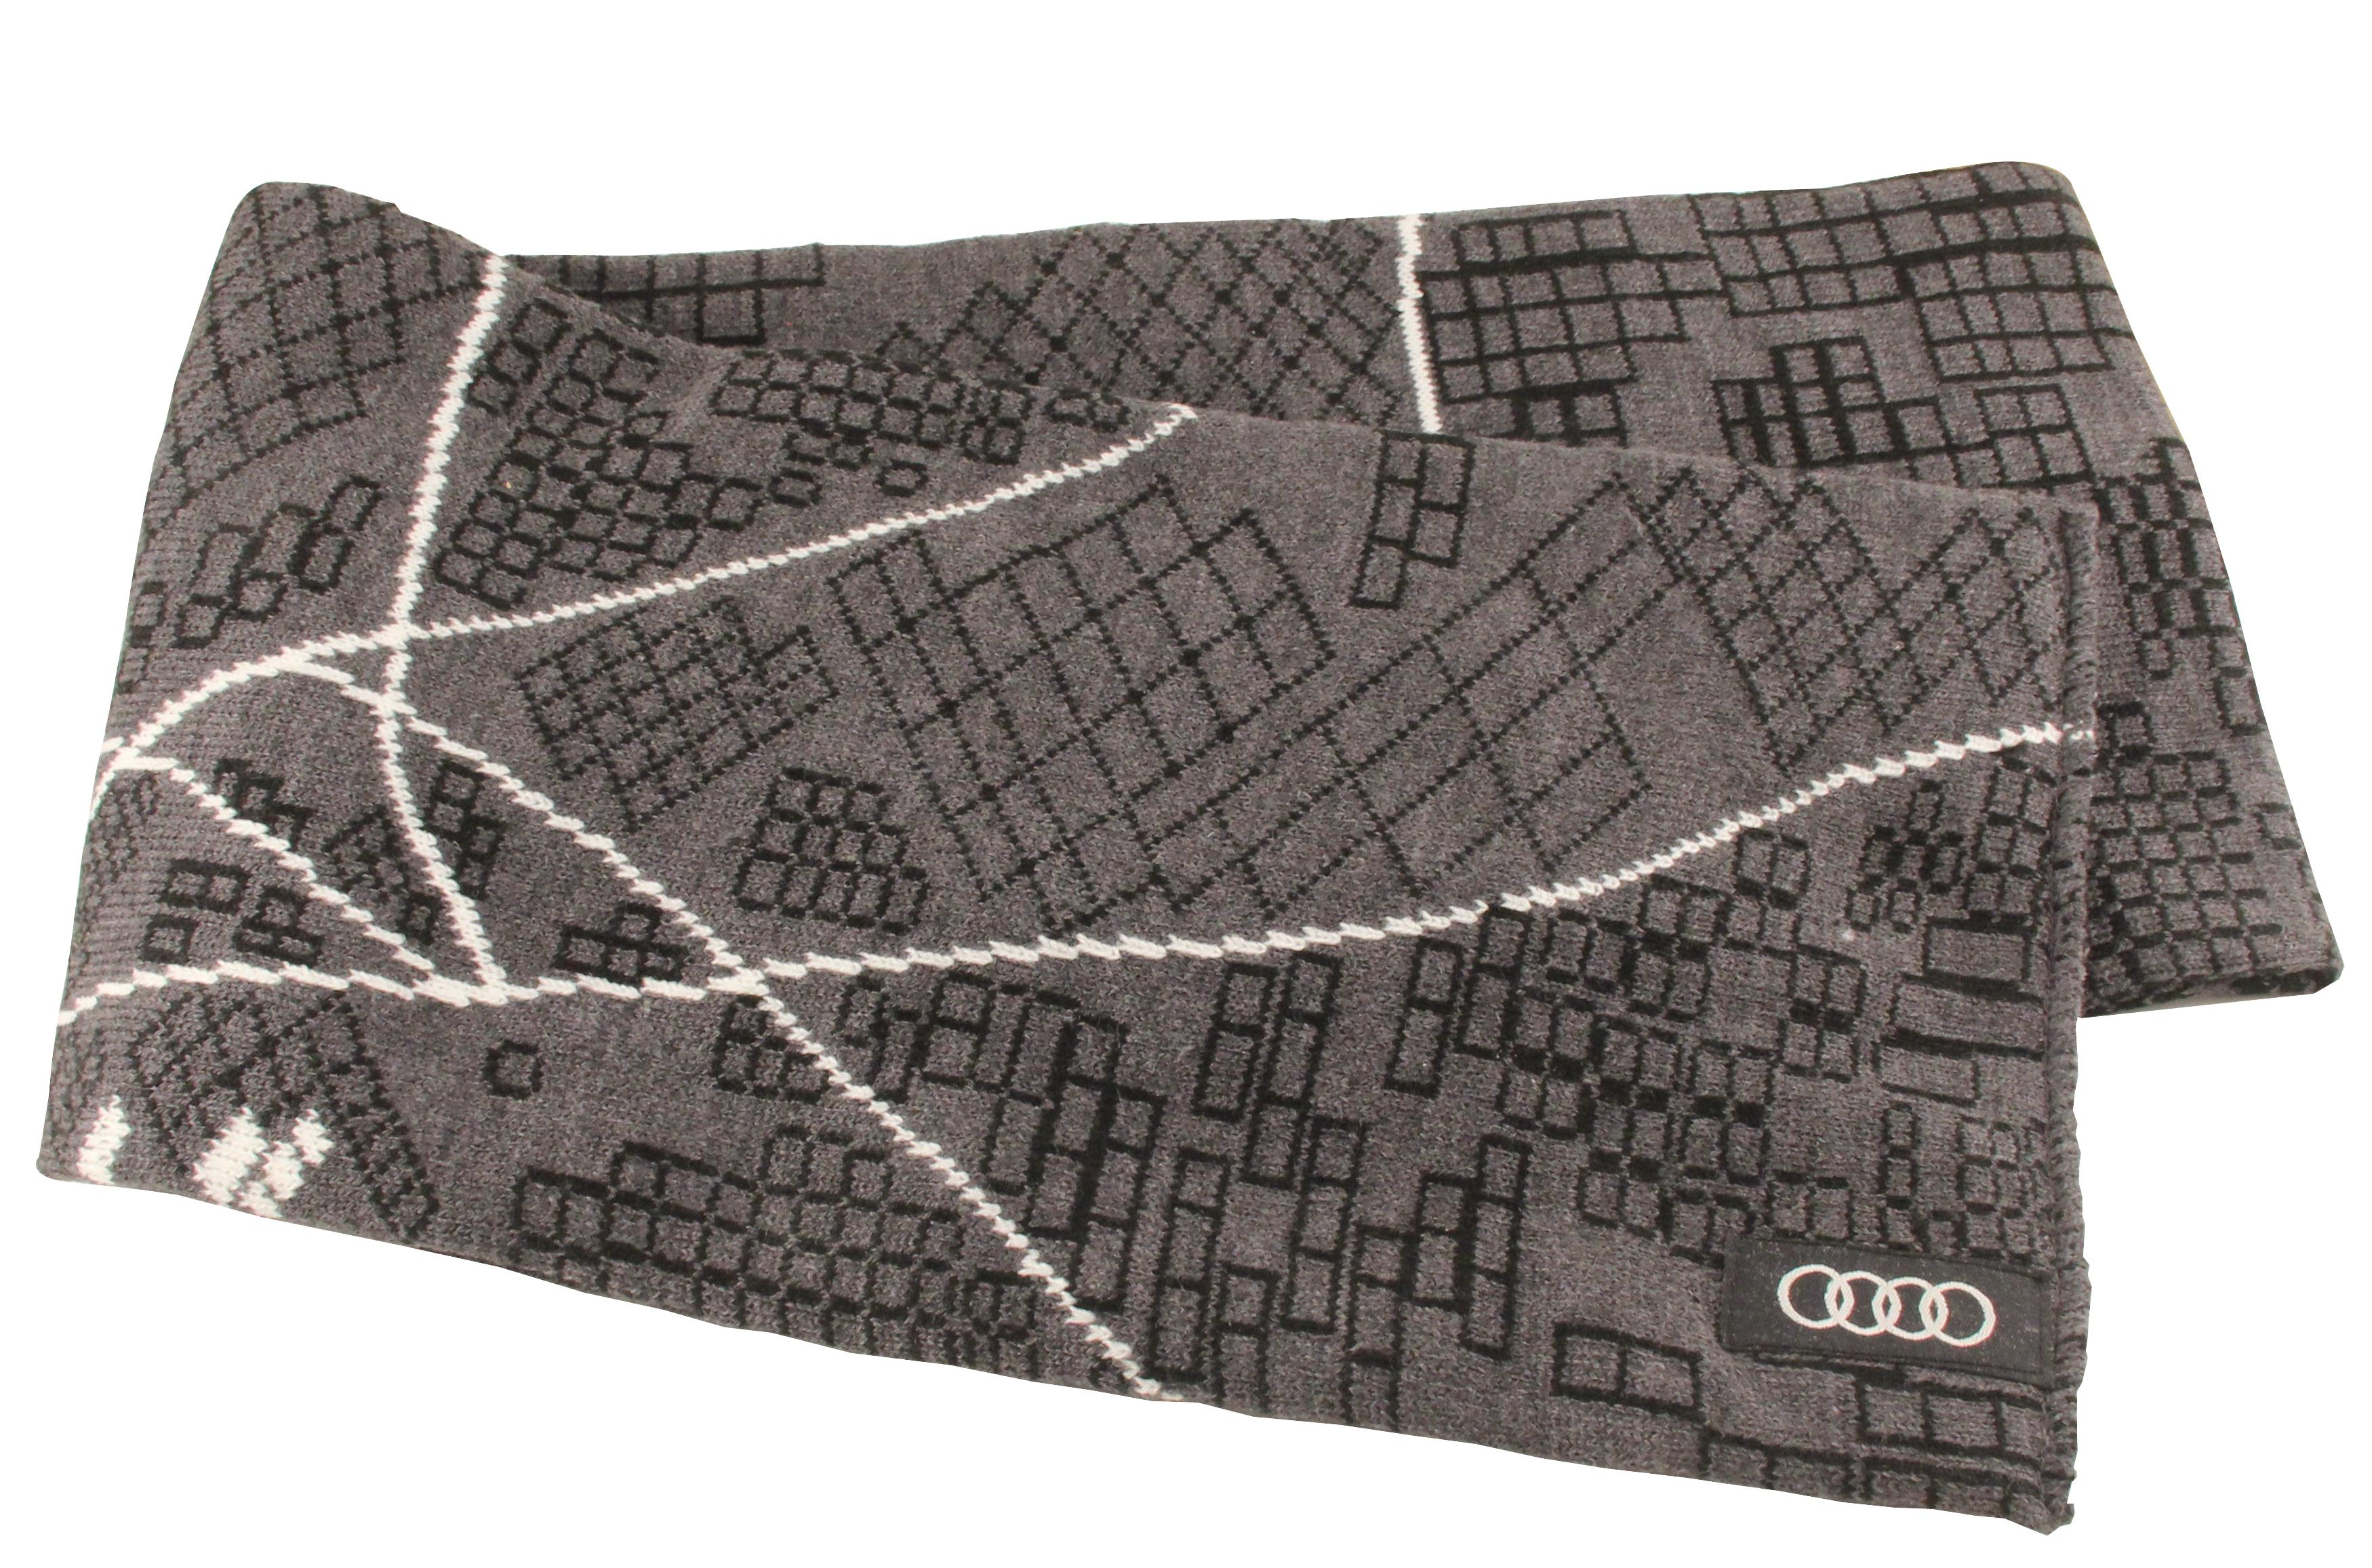 Acma499 Ingolstadt Germany Design Map Scarf Take